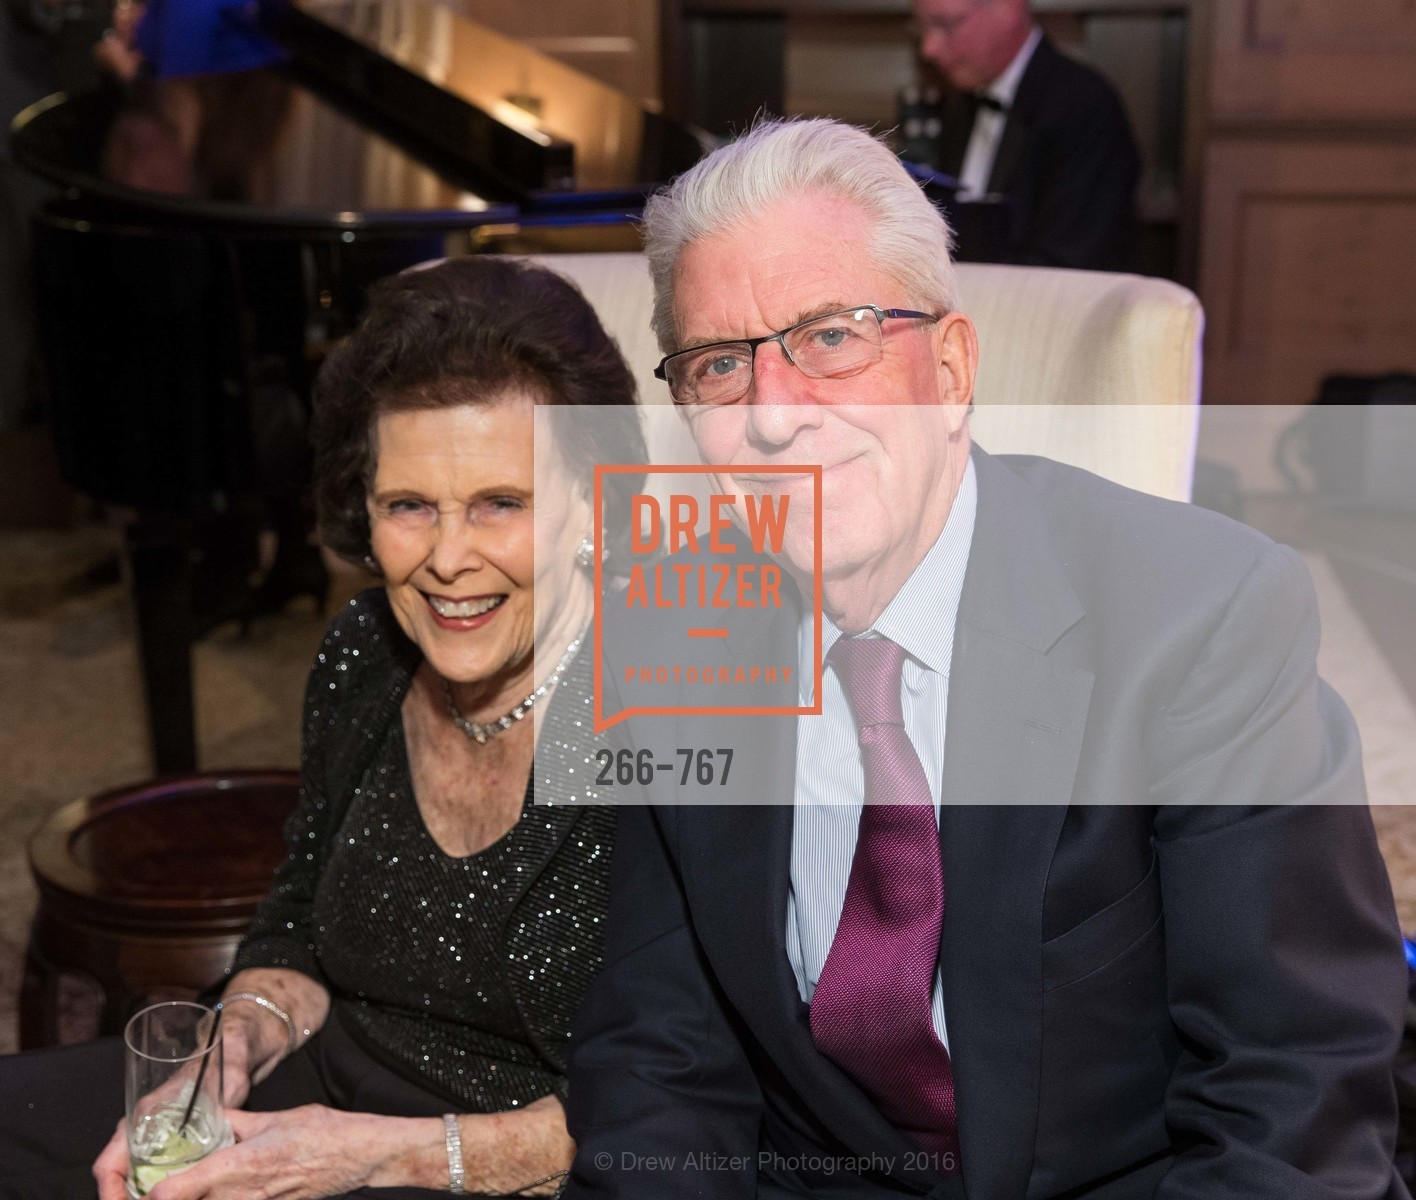 Lucy Jewett, Rich Guggenhime, A Special Reception with Tony Bennett, The Fairmont, San Francisco, The Penthouse Suite, January 26th, 2016,Drew Altizer, Drew Altizer Photography, full-service agency, private events, San Francisco photographer, photographer california